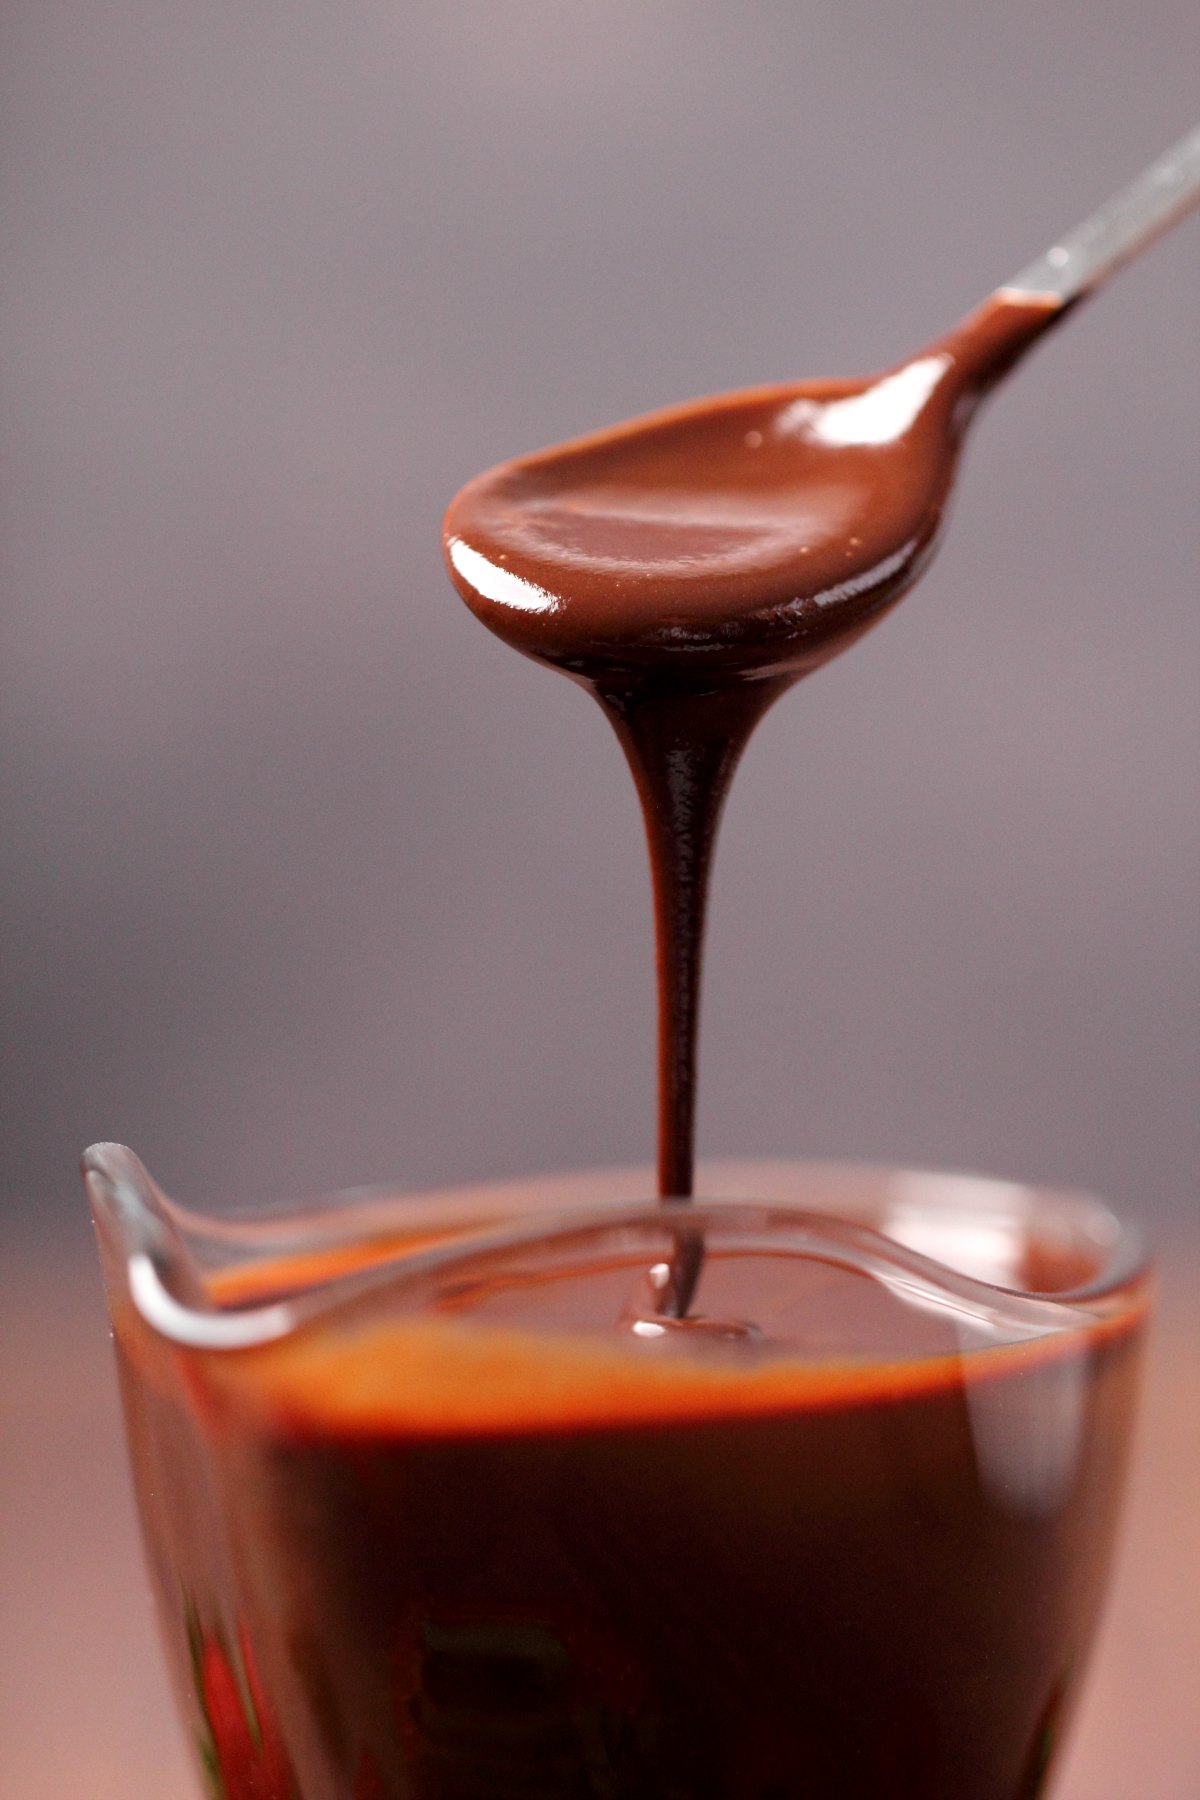 Vegan chocolate sauce pouring off a spoon.